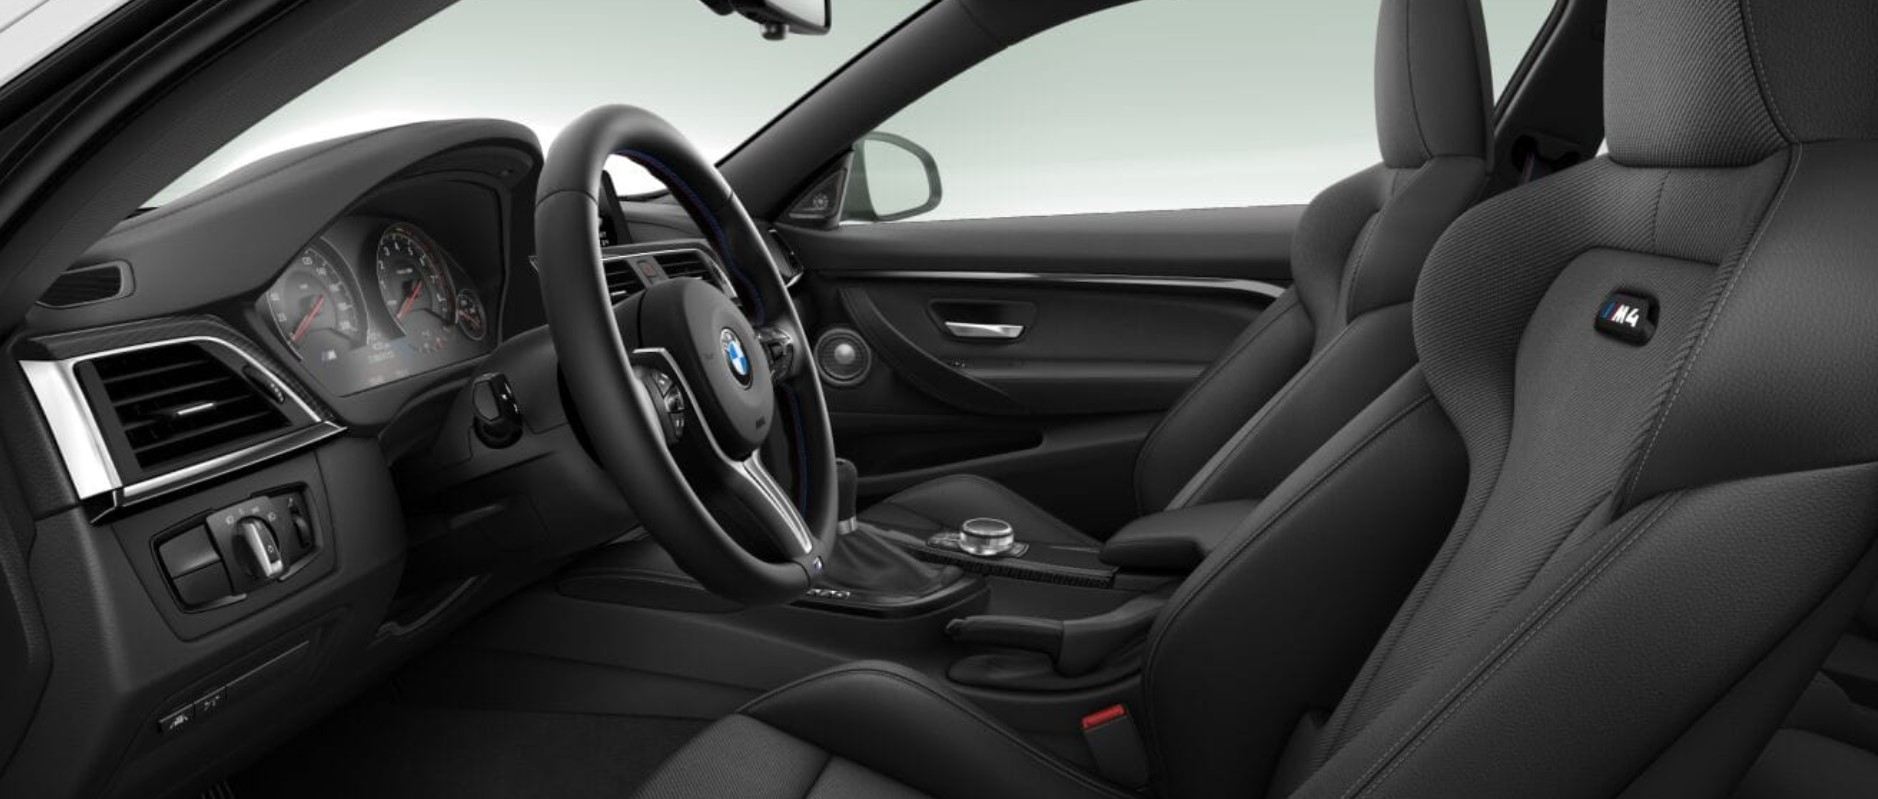 2019 BMW M4 CS Black Interior